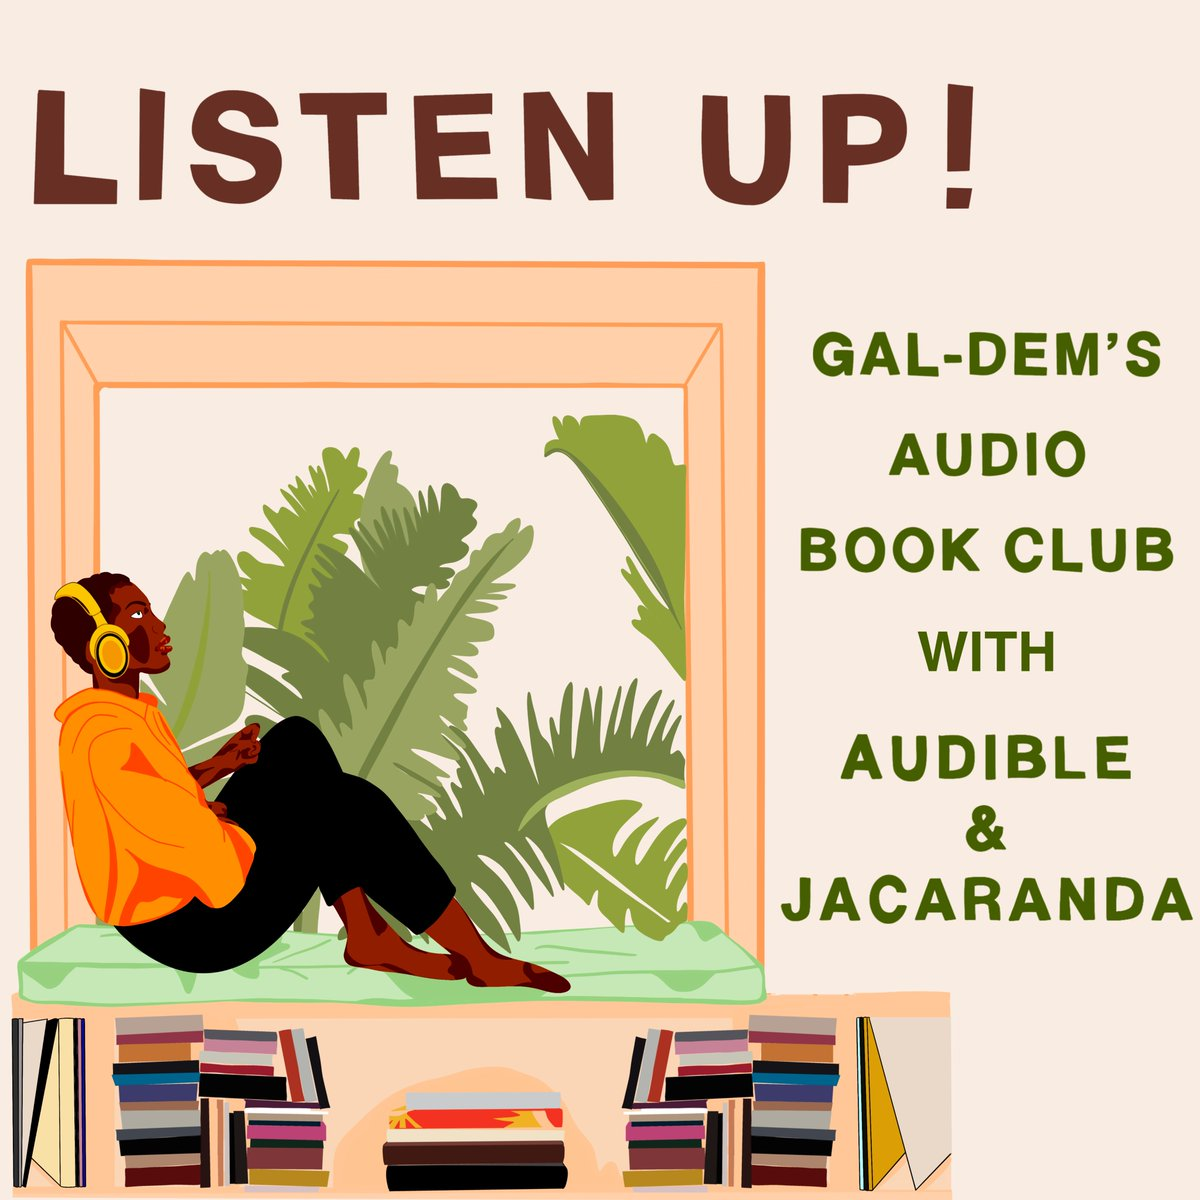 We're working with @JacarandaBooks and @audibleuk to host a monthly audiobook club! We have some brilliant titles lined up, all by new Black authors, so if you're looking for a new way to discover and discuss good books, sign up here: forms.gle/jyGVNLaECtCwFJ…